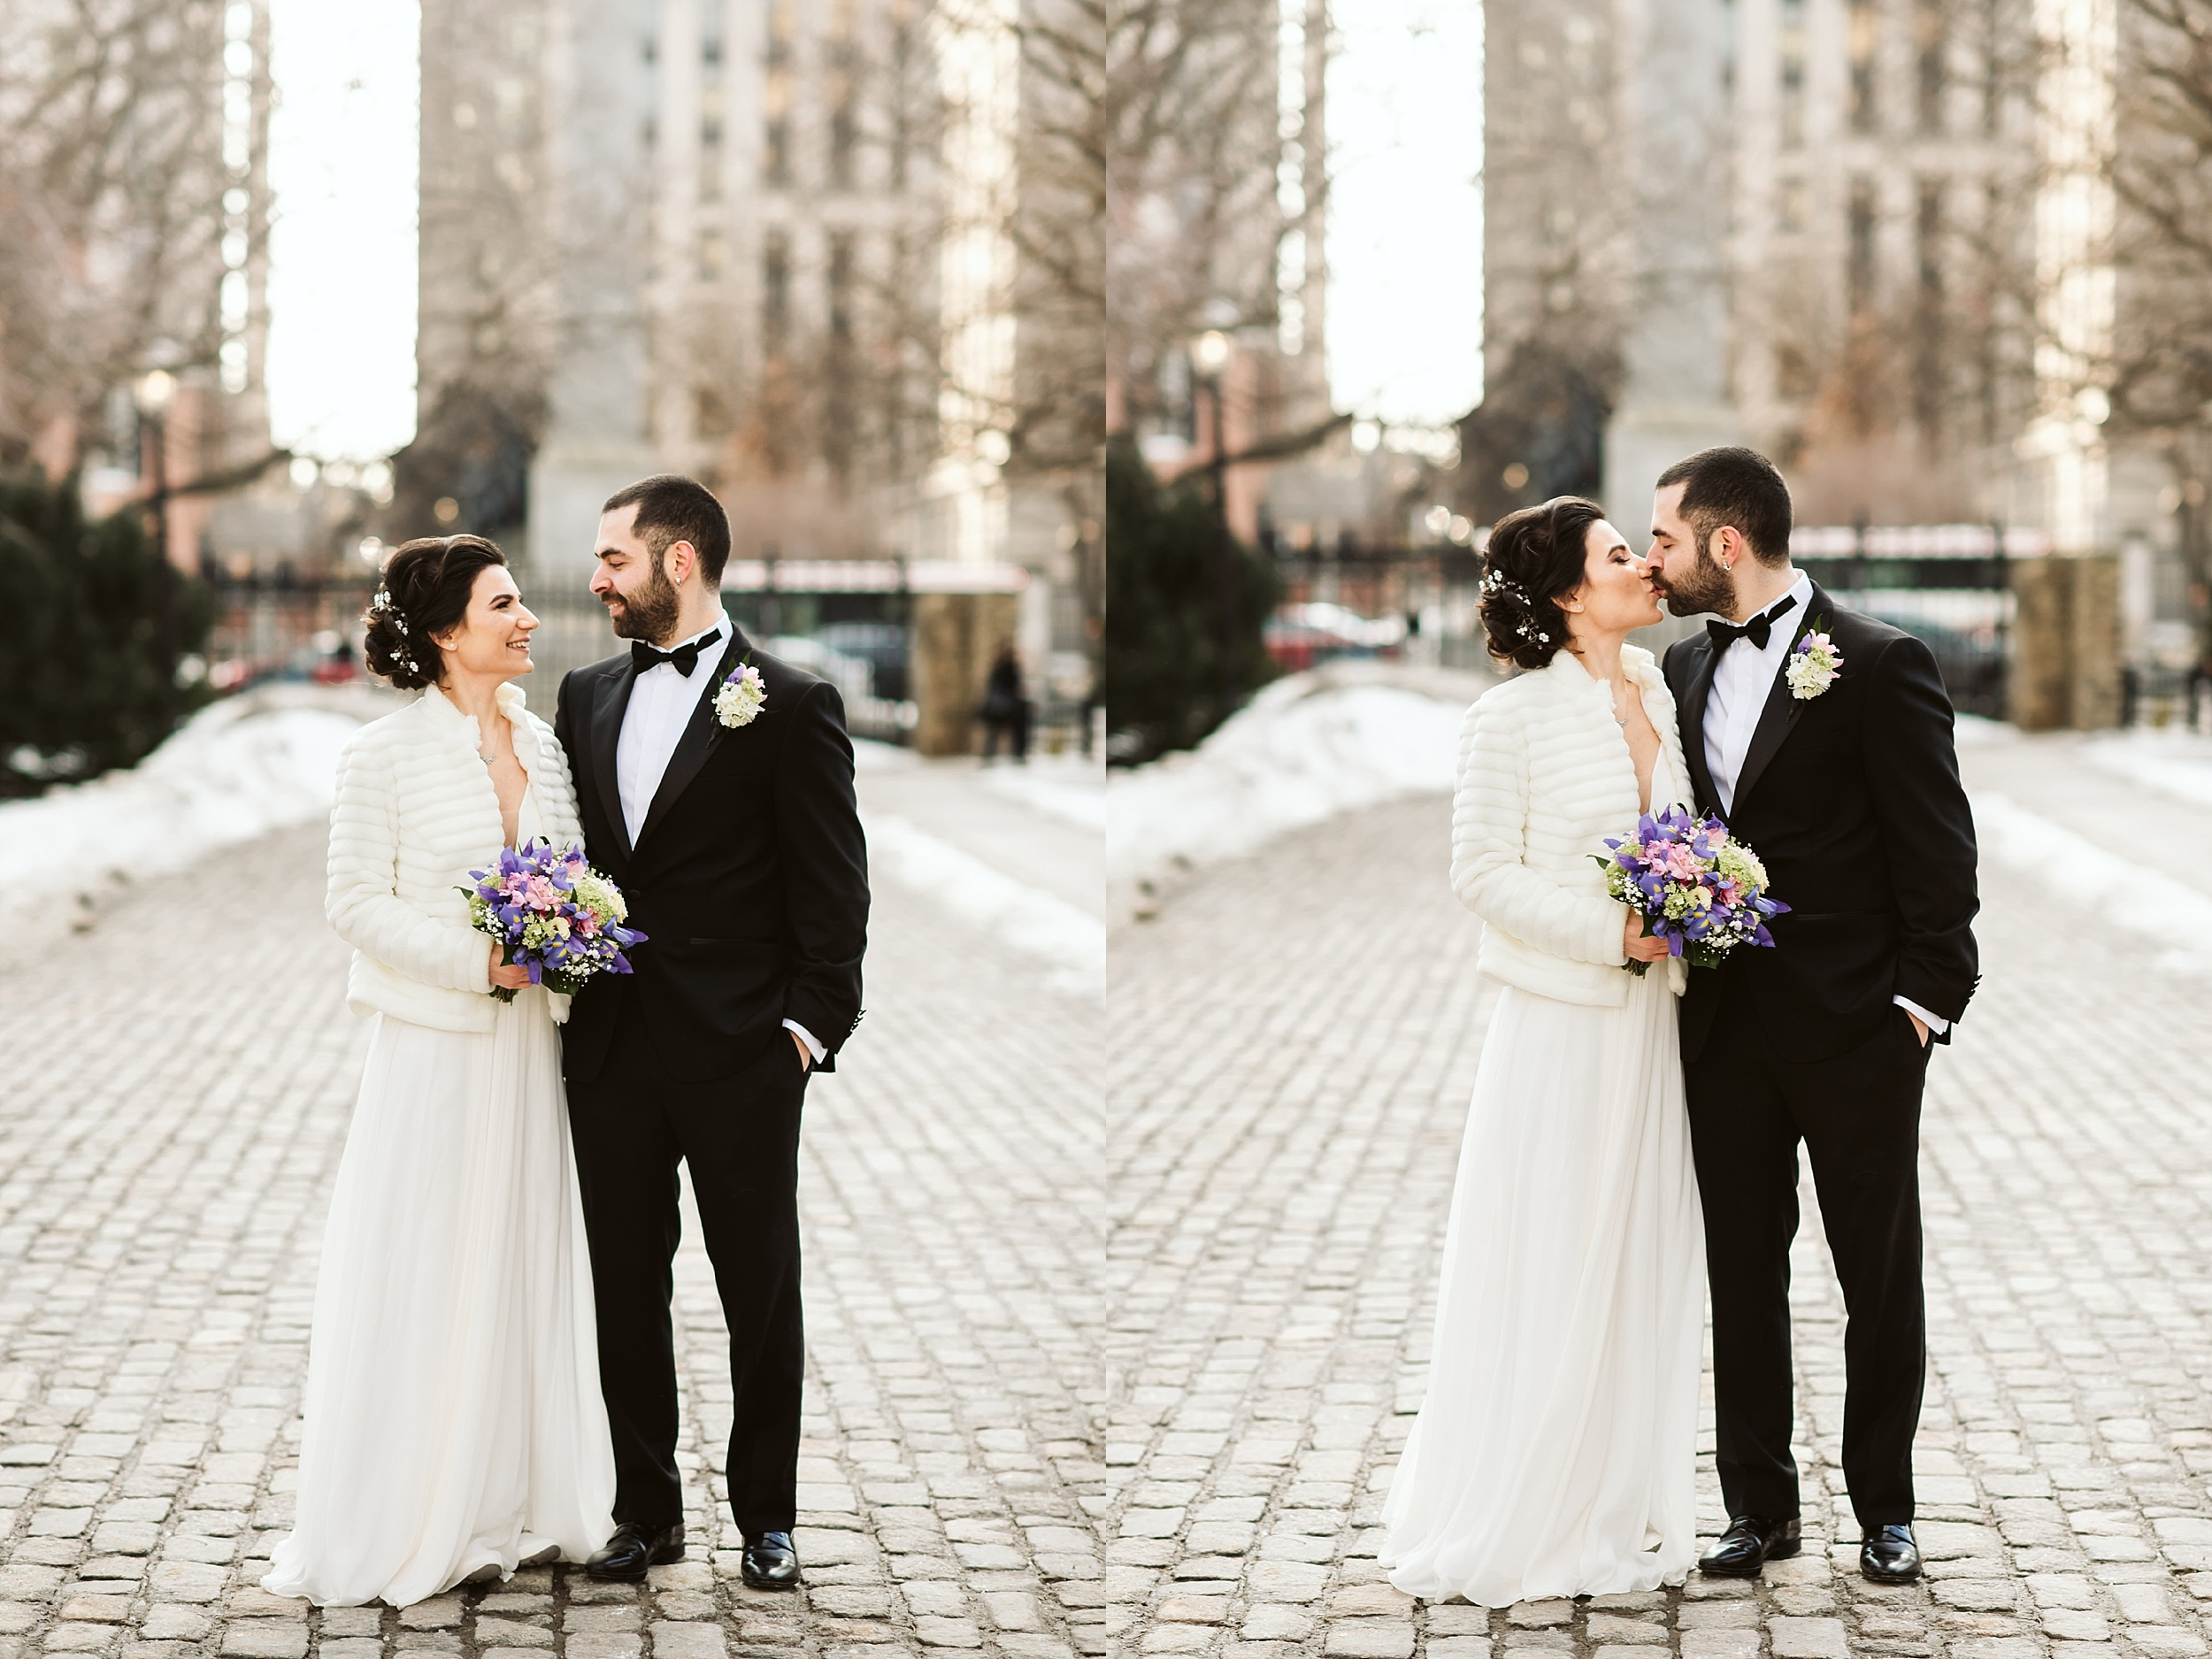 Toronto_City_Hall_Elopement_Wedding_Photographer008.jpg